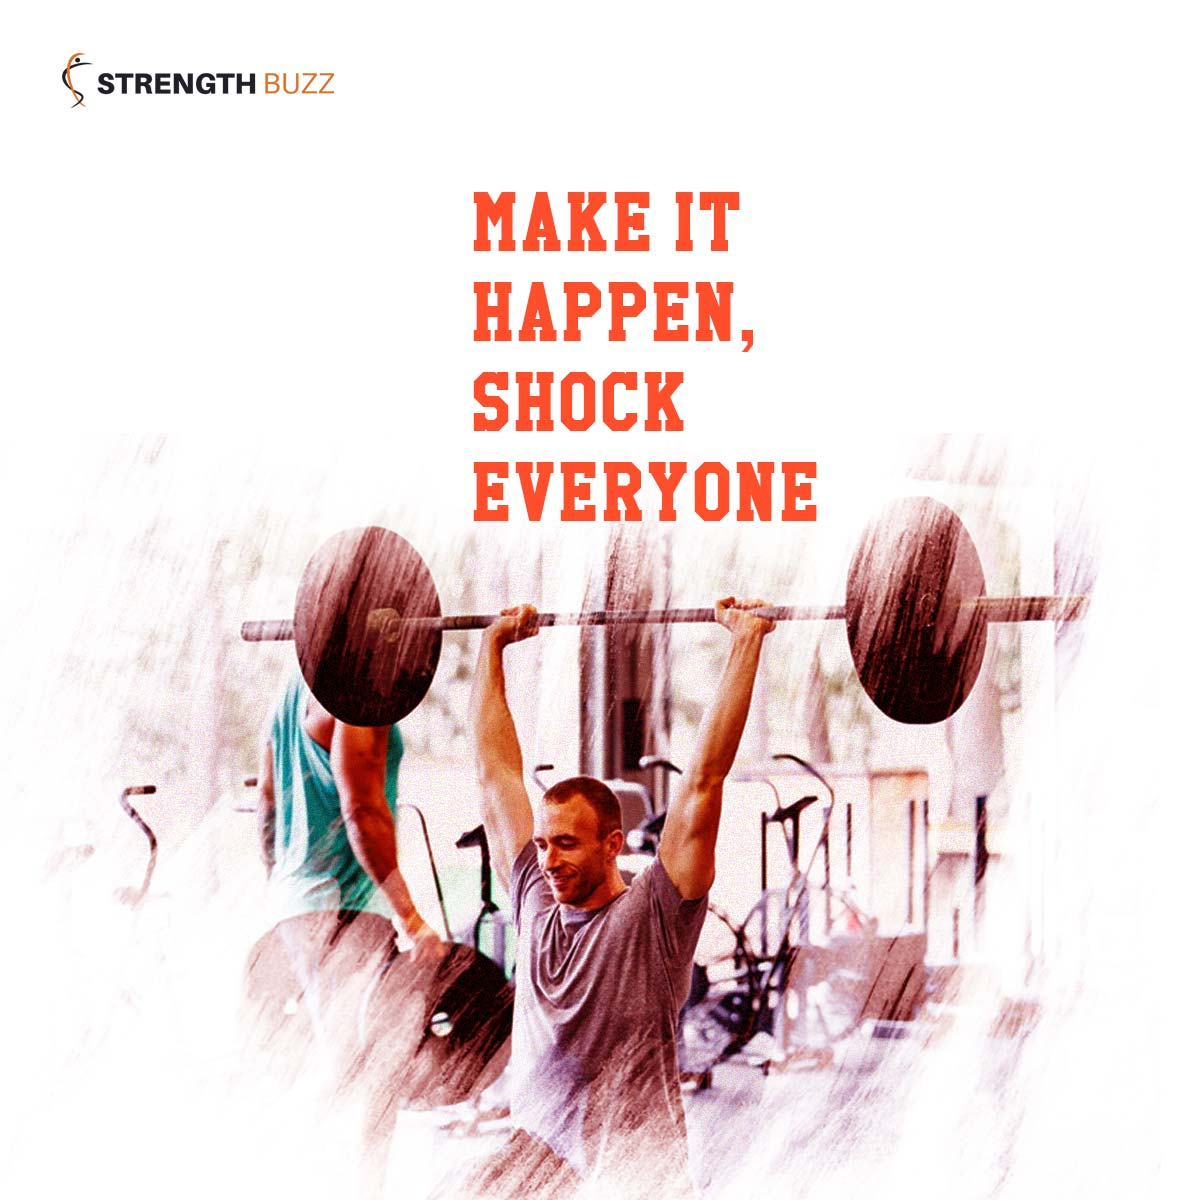 Gym Motivation Quotes - Make it happen, shock everyone